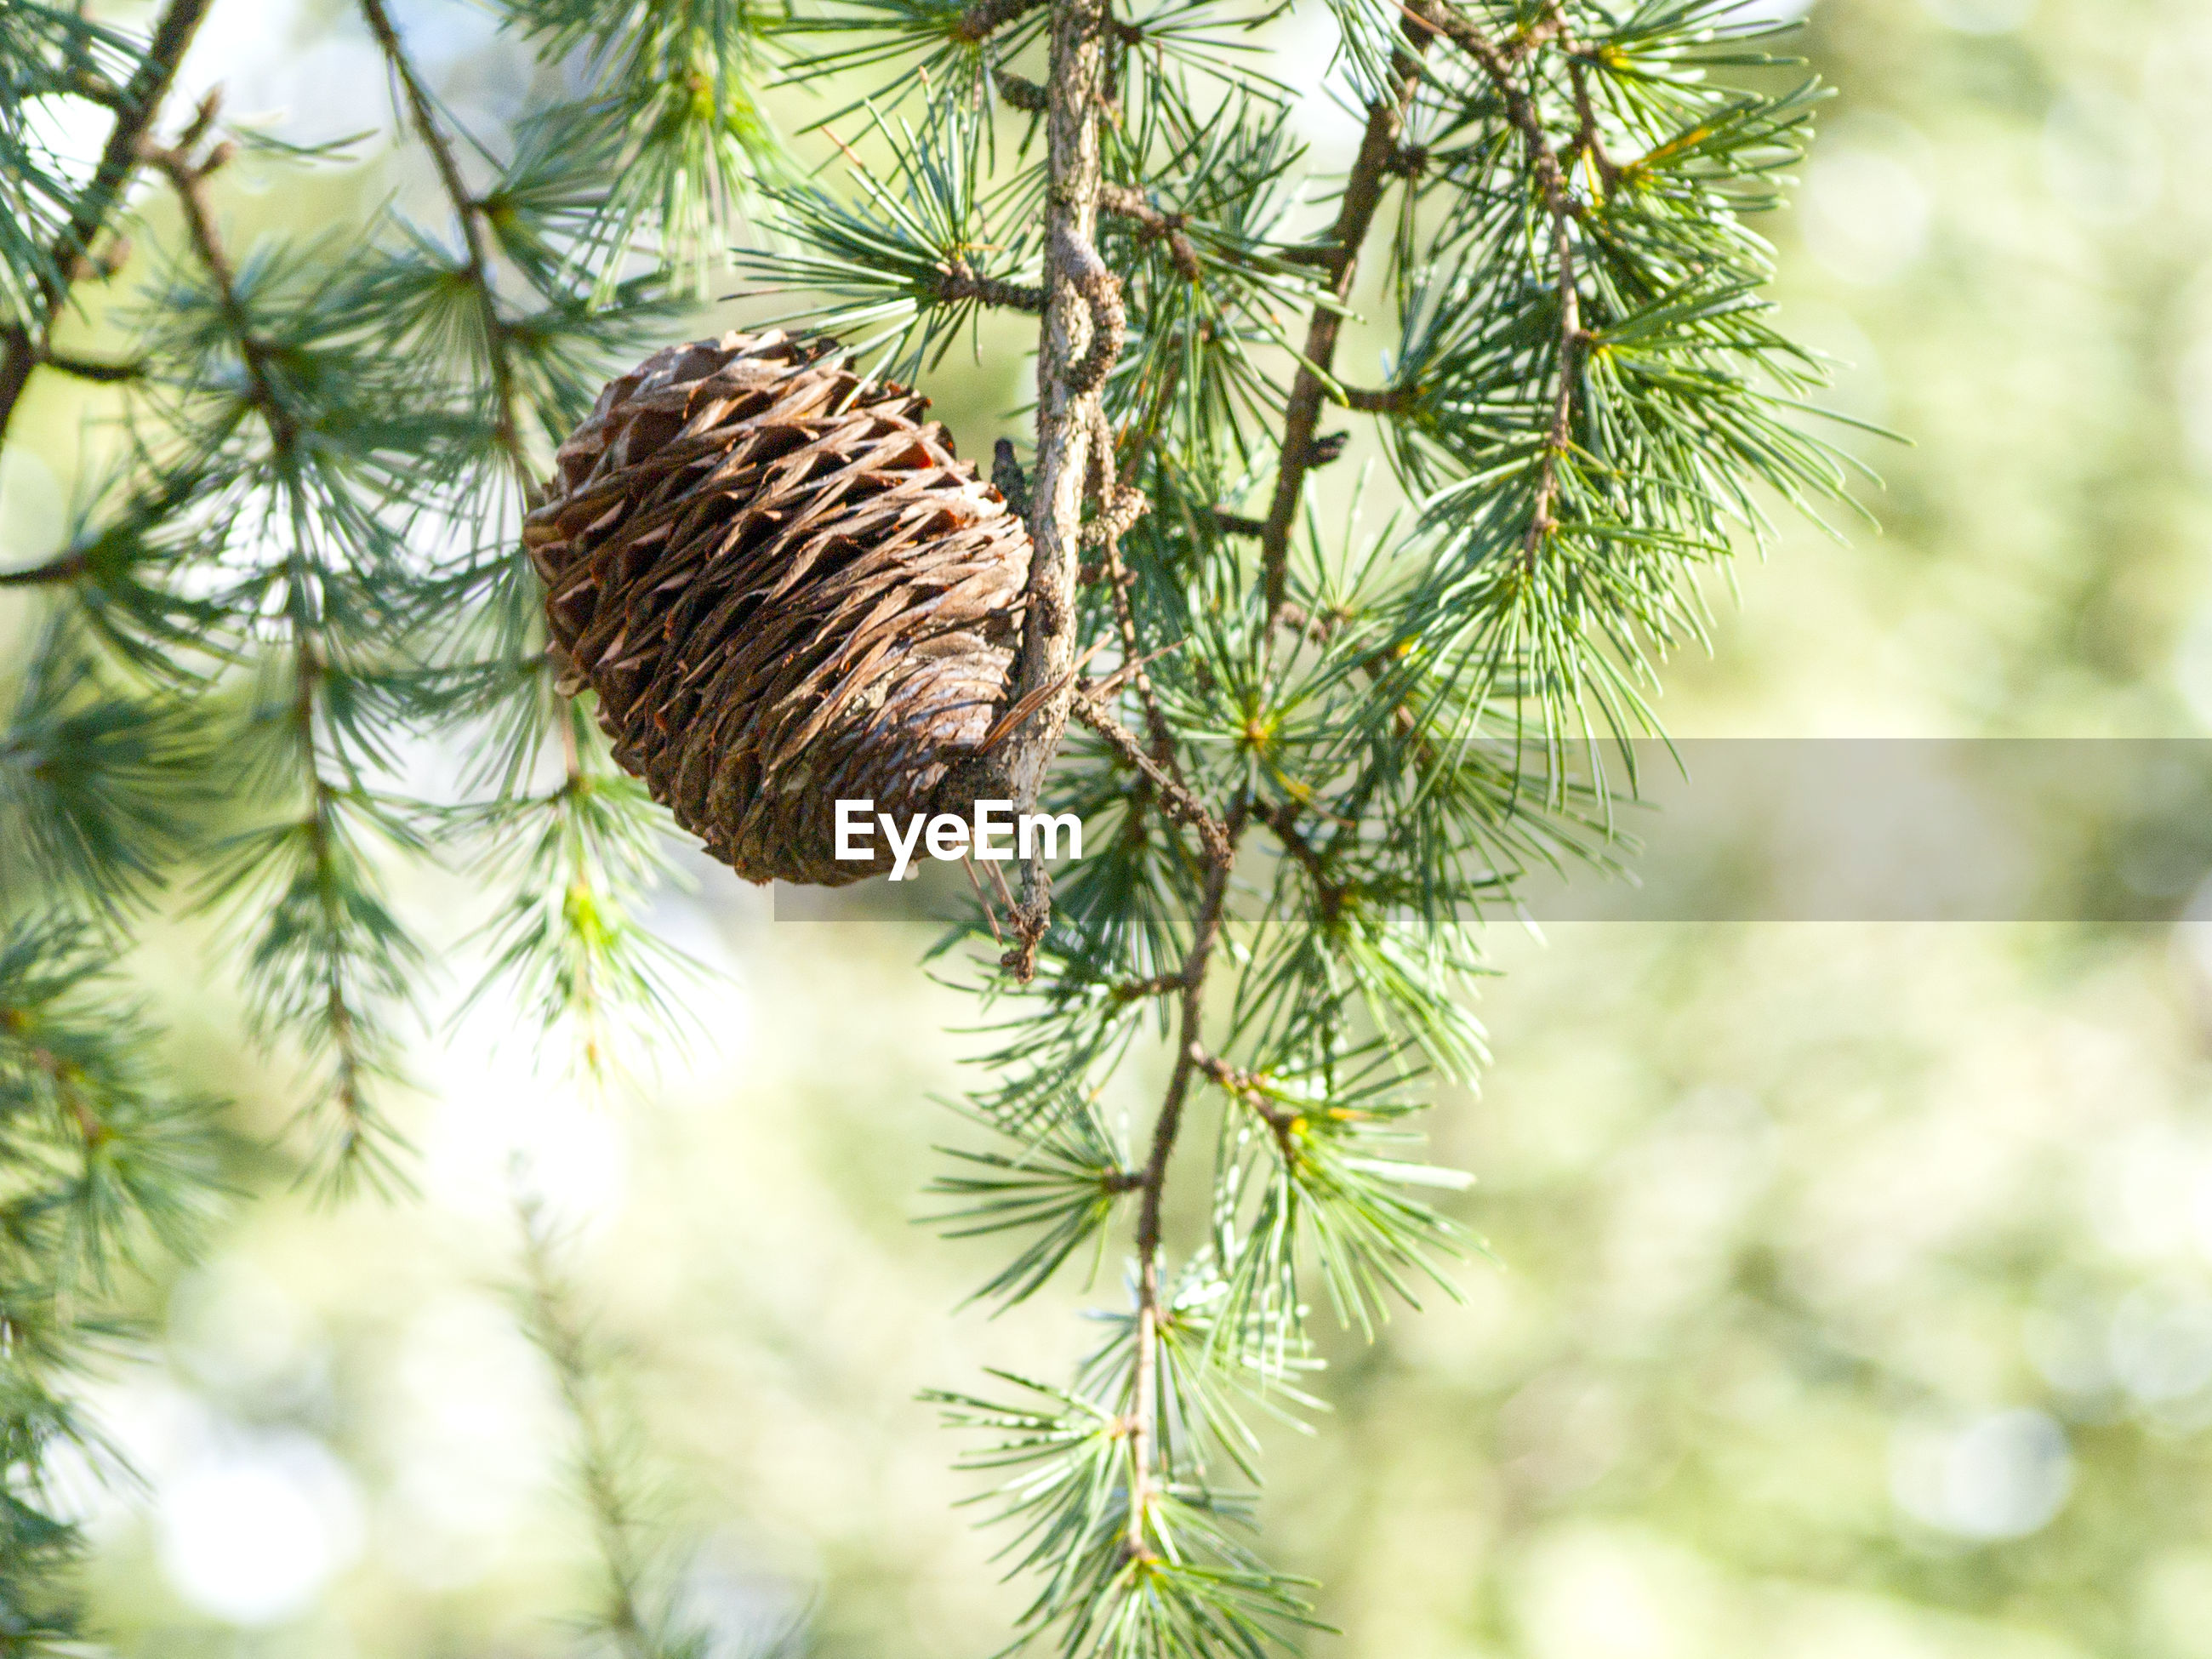 Close-up of pine cone hanging on tree